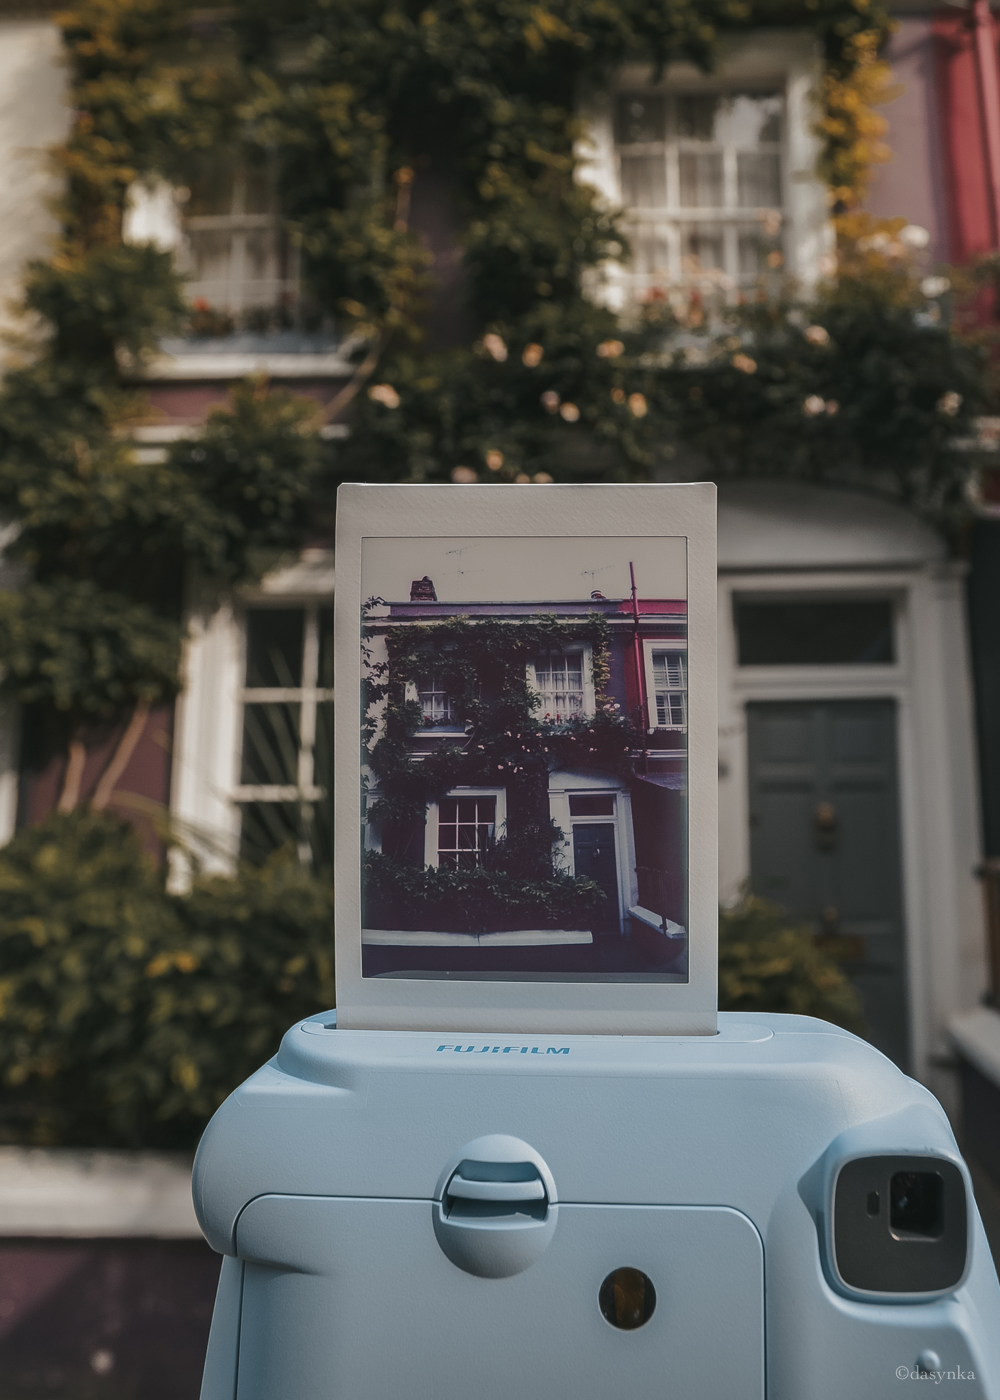 dasynka-fashion-blog-blogger-influencer-inspiration-shooting-globettrotter-travel-traveller-instagram-lifestyle-italy-ideas-italian-polaroids-polaroid-fujifilm-instax-90-8-worldmap-planisfero-mappa-mondo-pin-memories-photographs-vintage-print-london-notting-hill